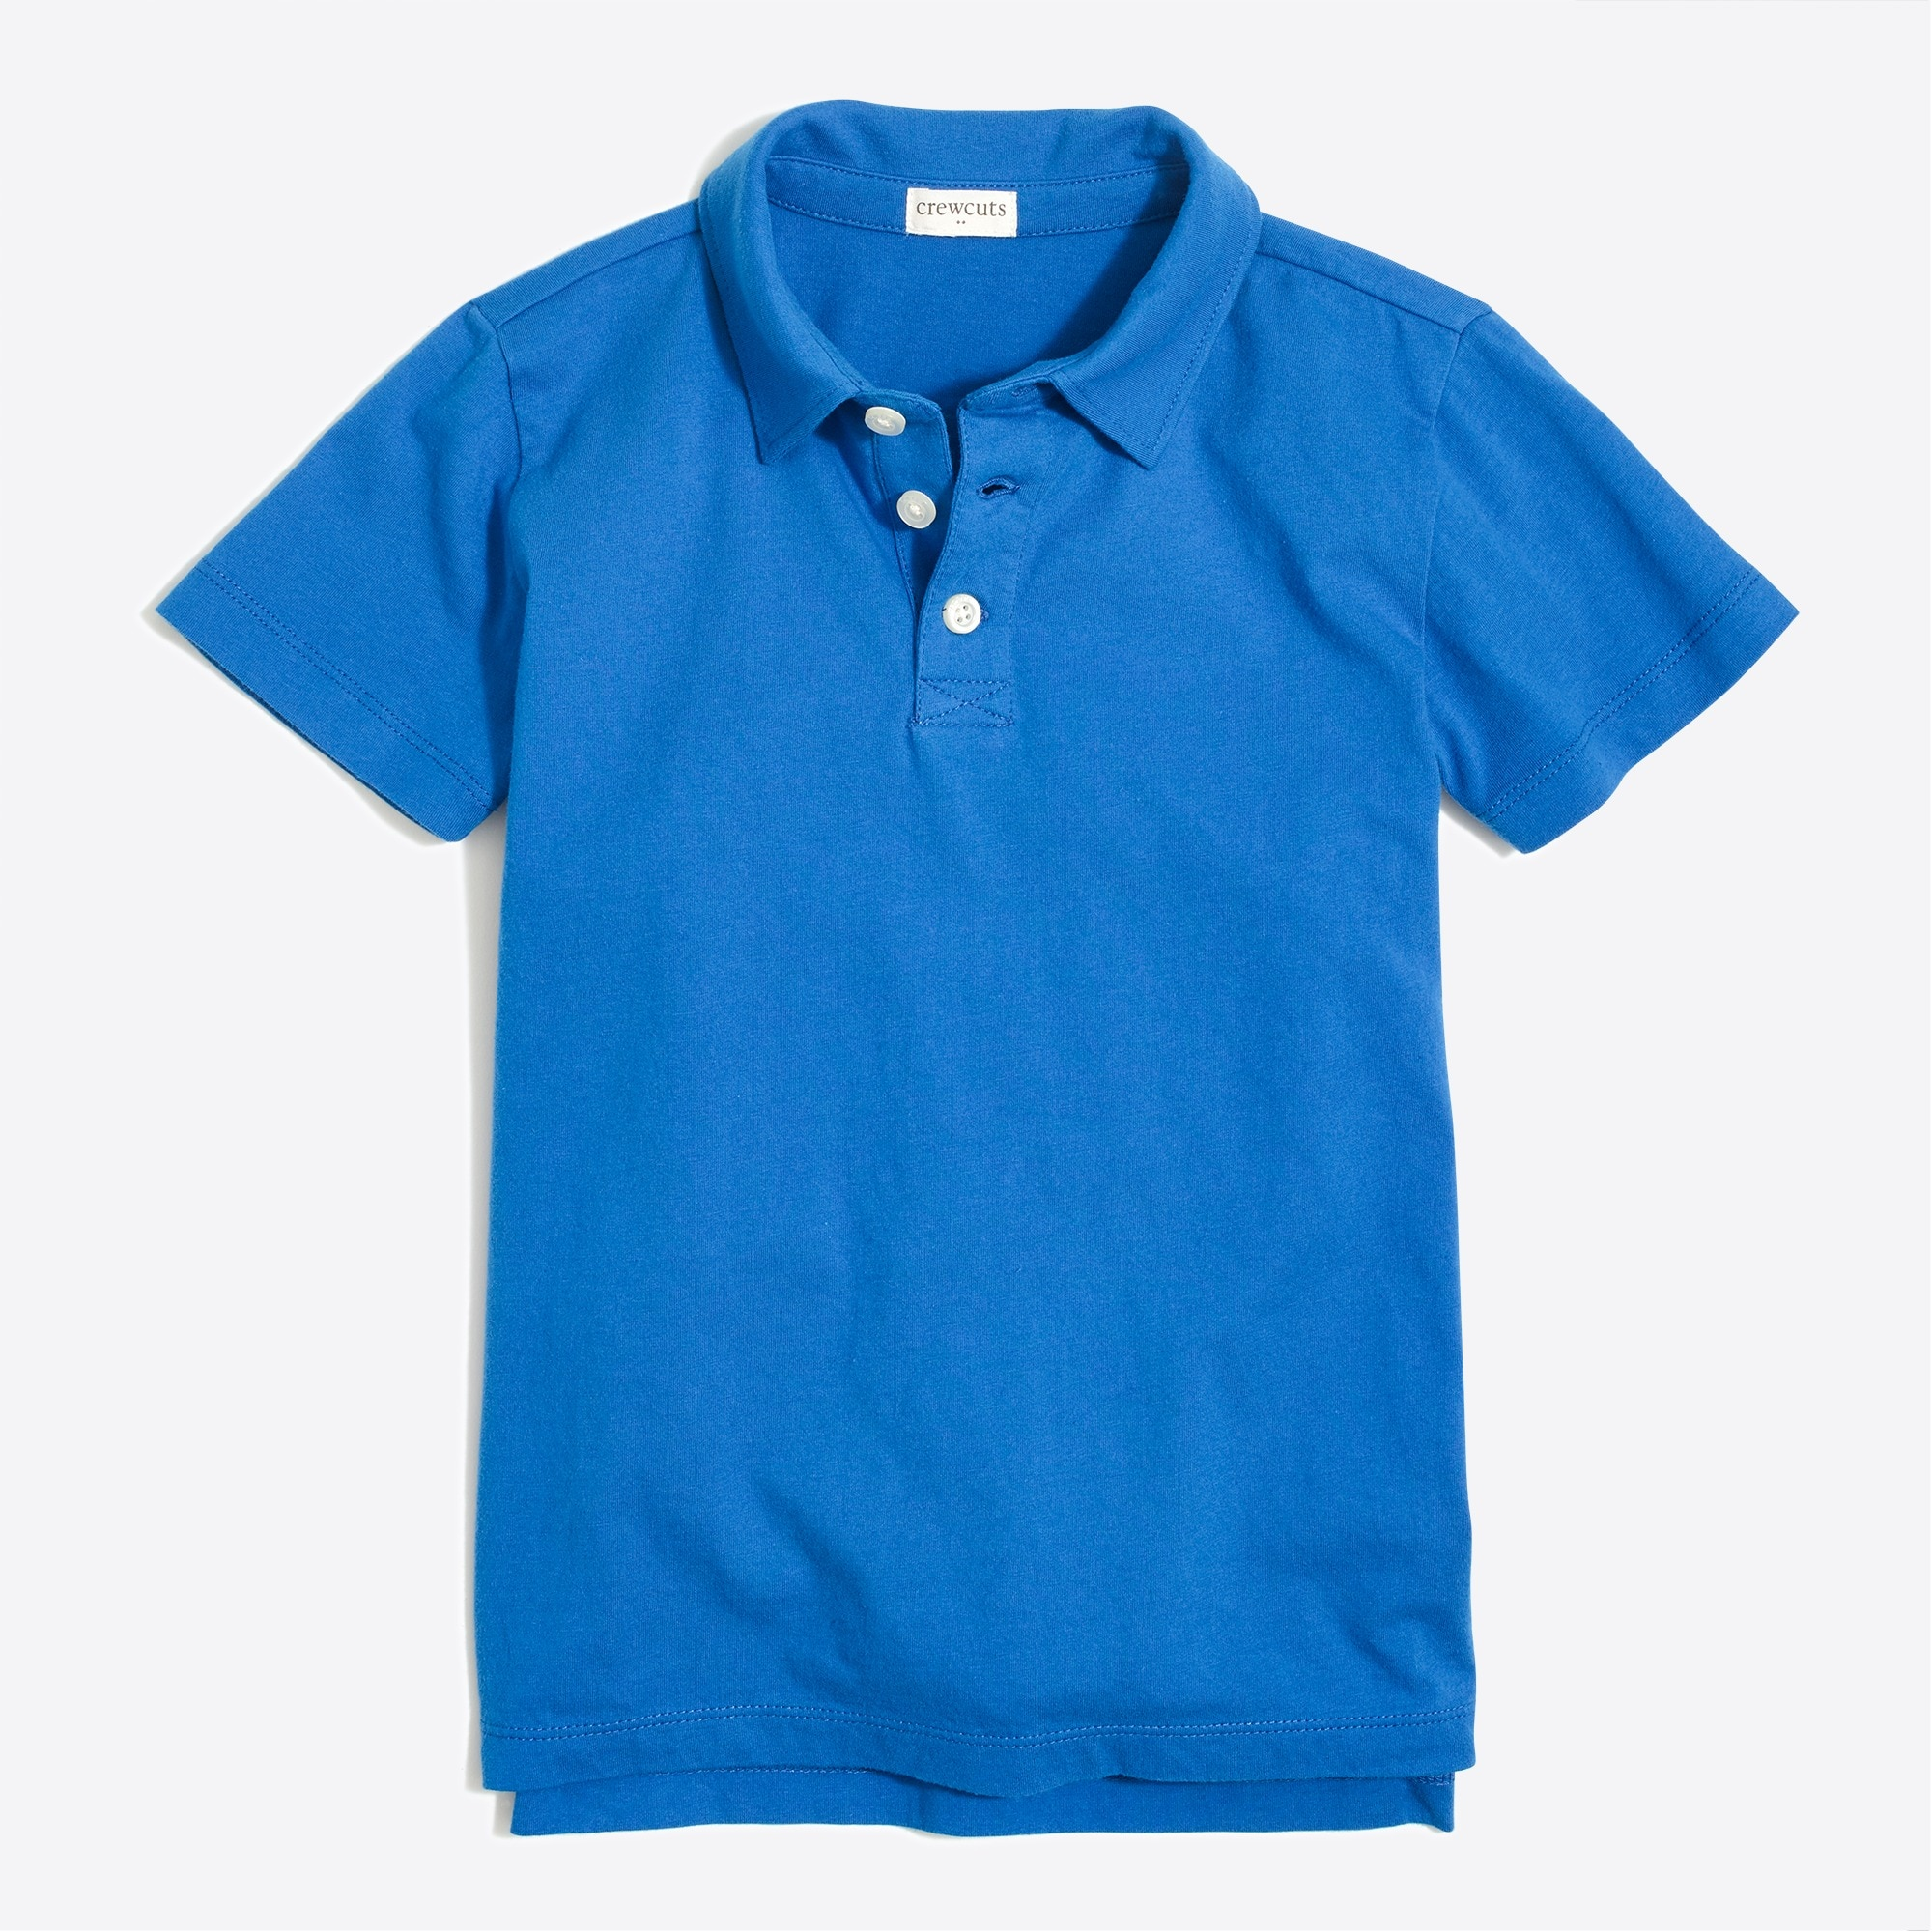 factory boys Boys' jersey polo shirt